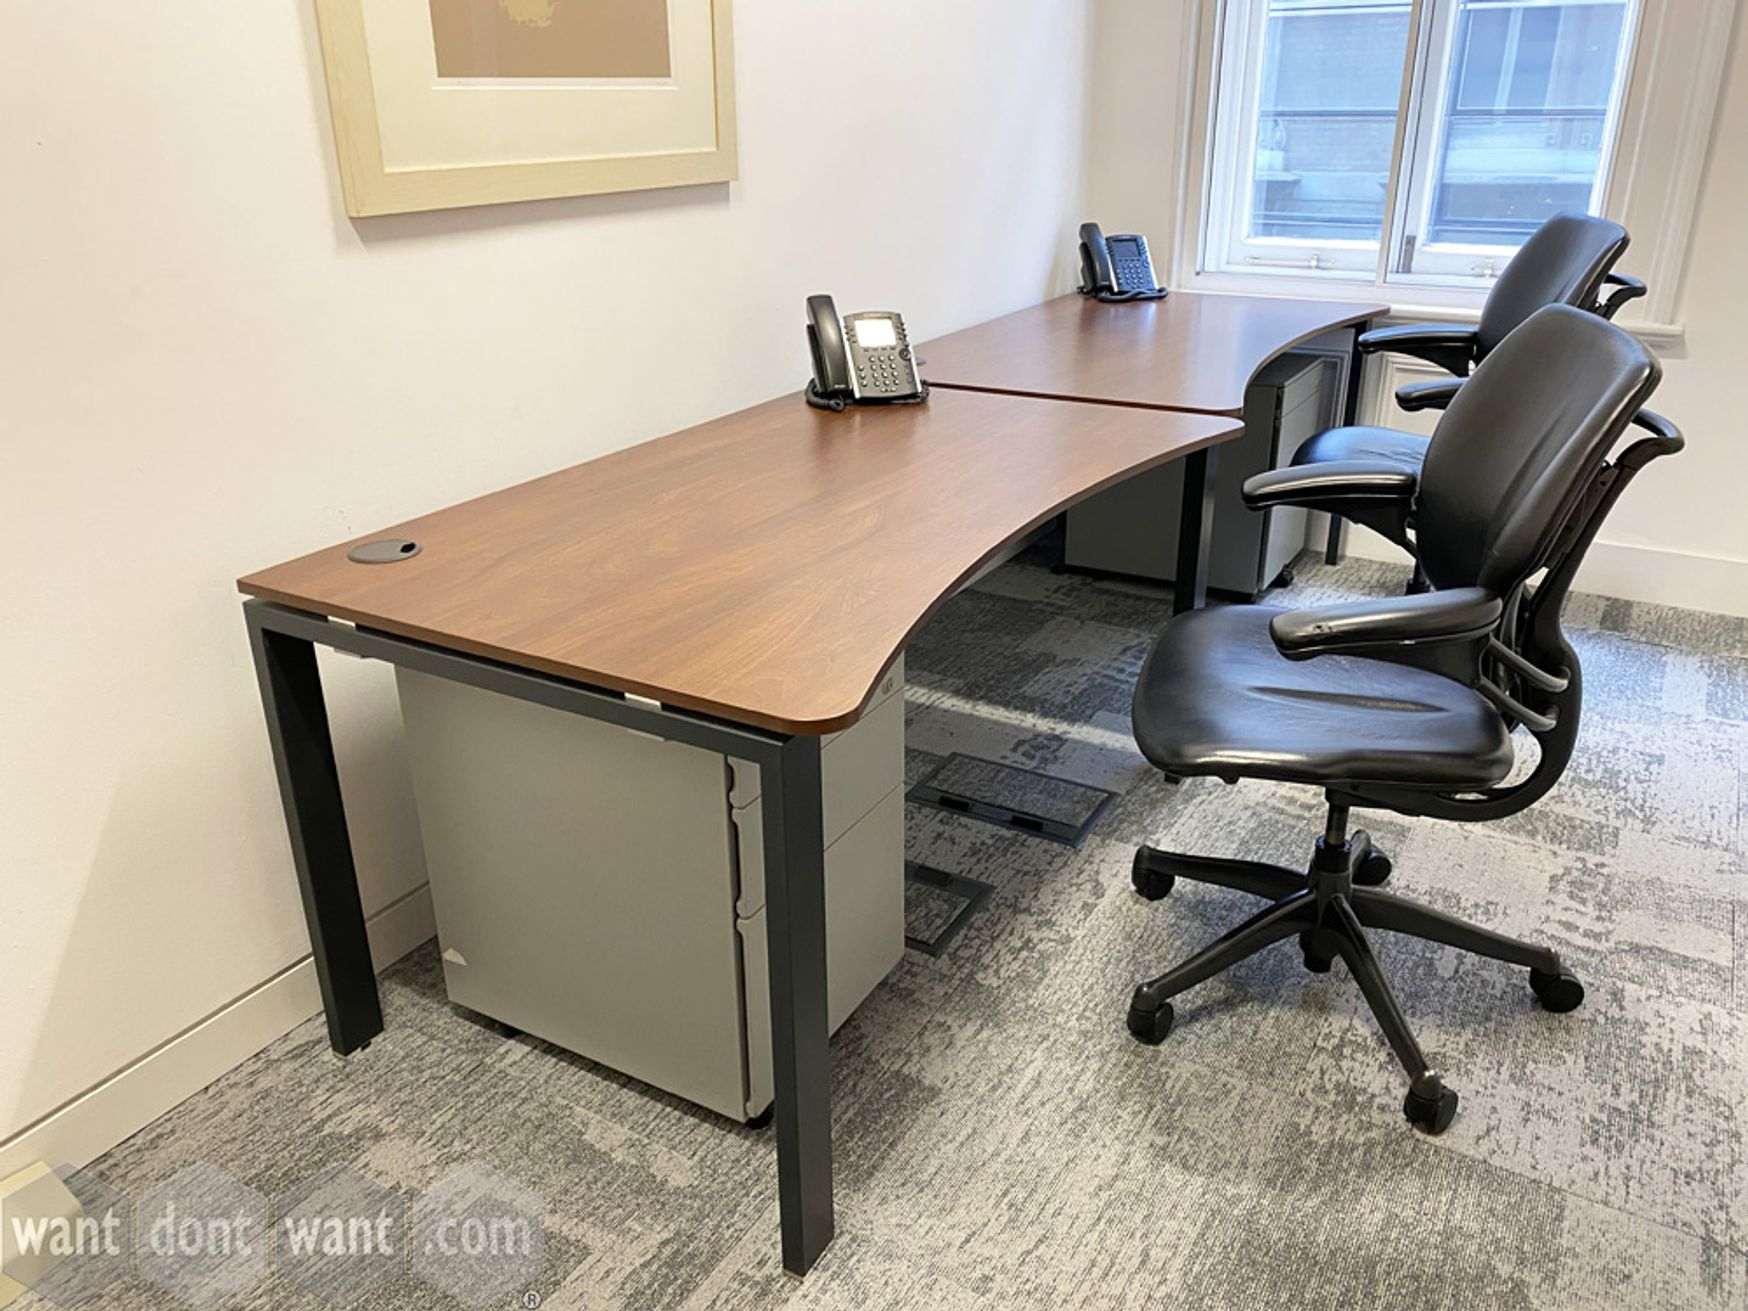 Used double wave-shaped free-standing desks with walnut MFC tops and black frames. 1400mm w x 800mm d